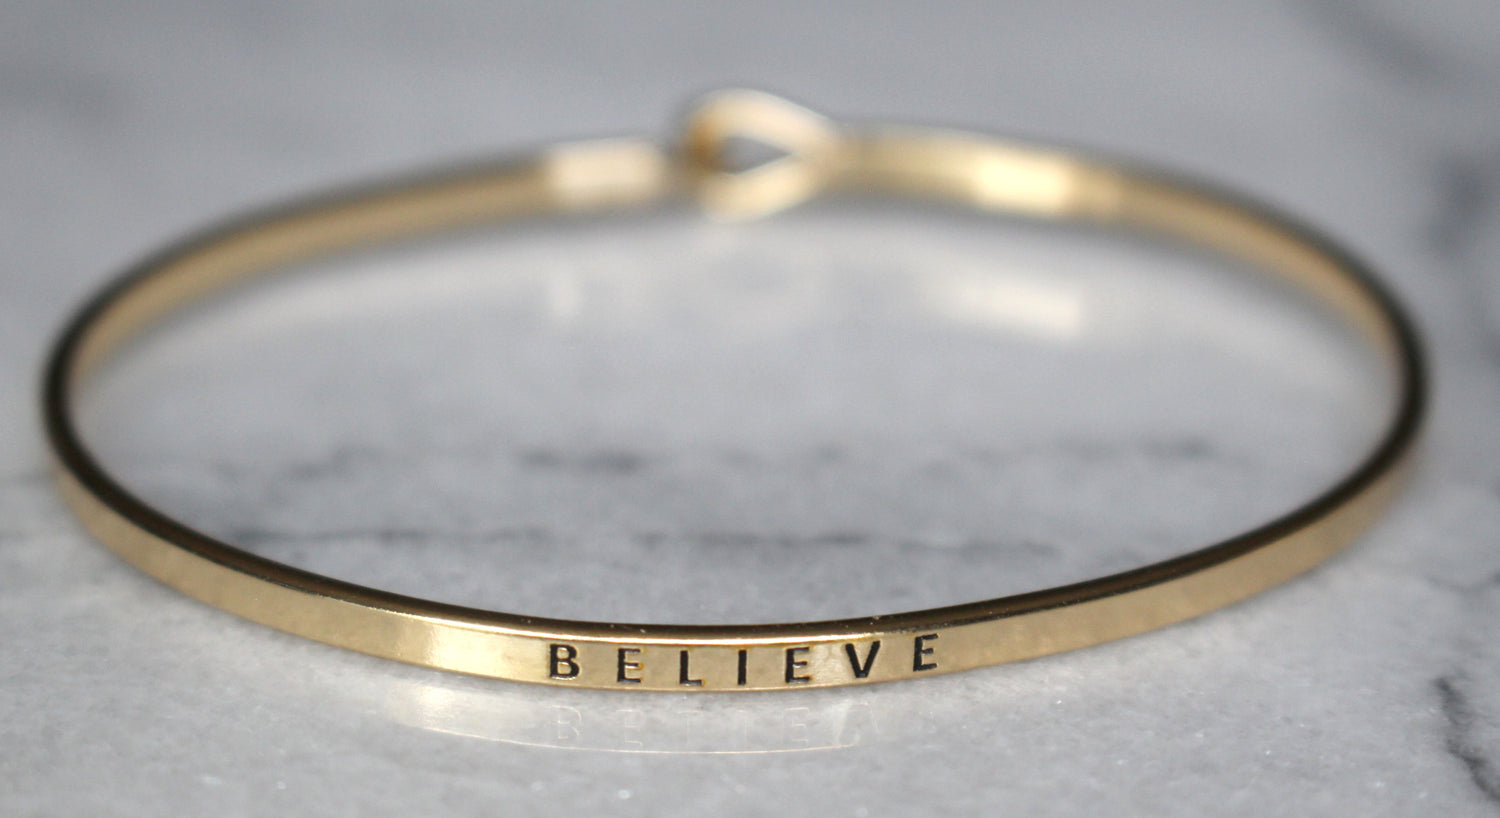 'Believe' Dainty Bangle Bracelet-Gold